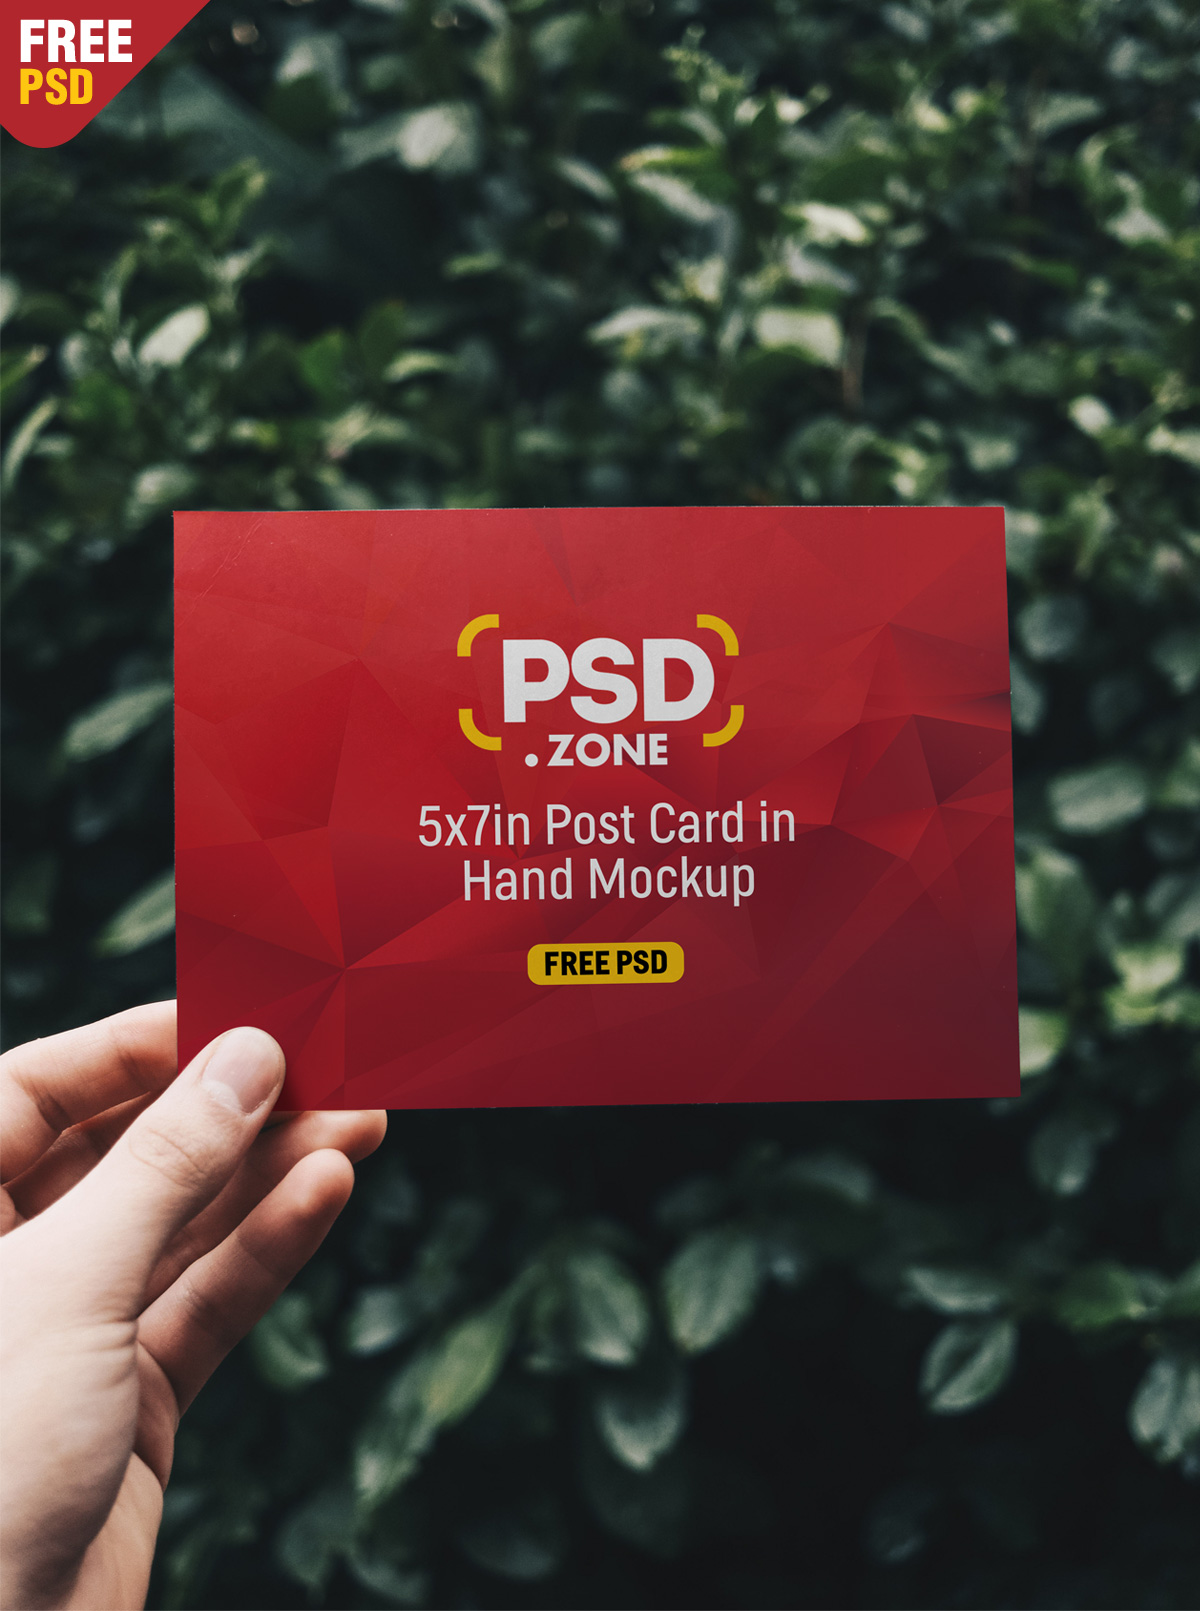 Post Card in Hand Mockup PSD